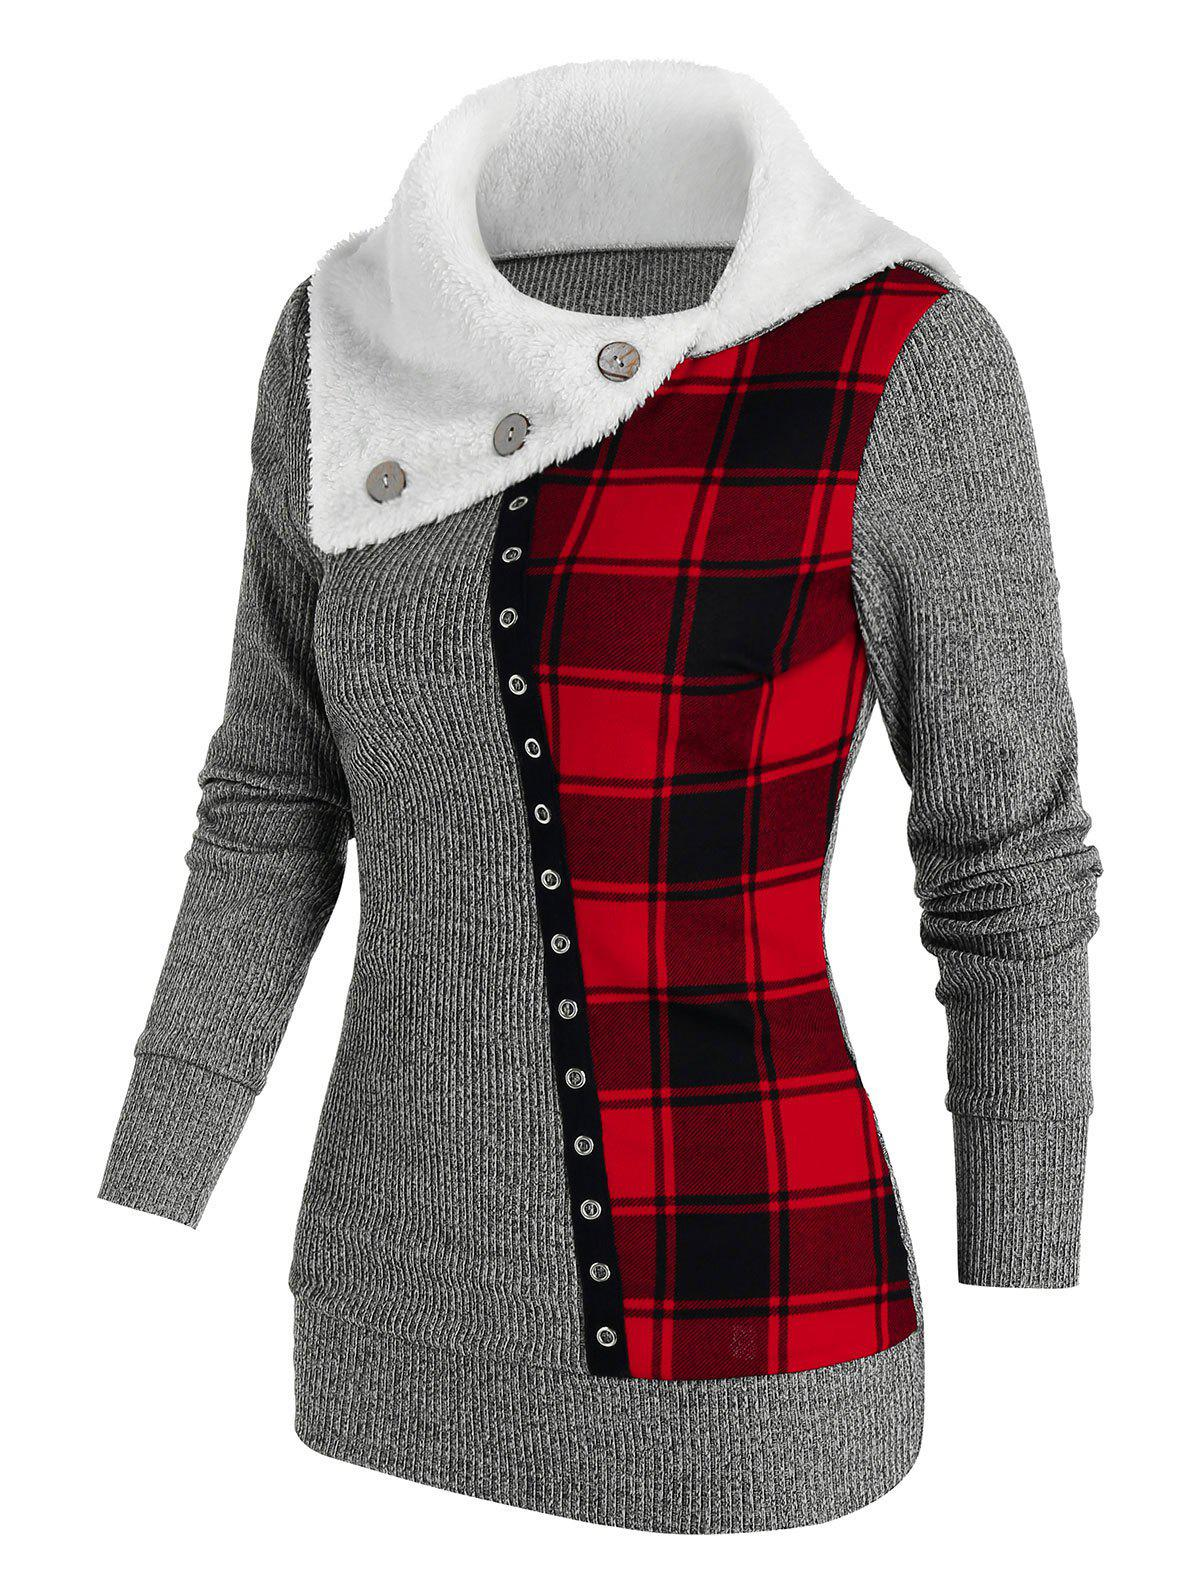 Hot Faux Fur Collar Plaid Patchwork Knitwear